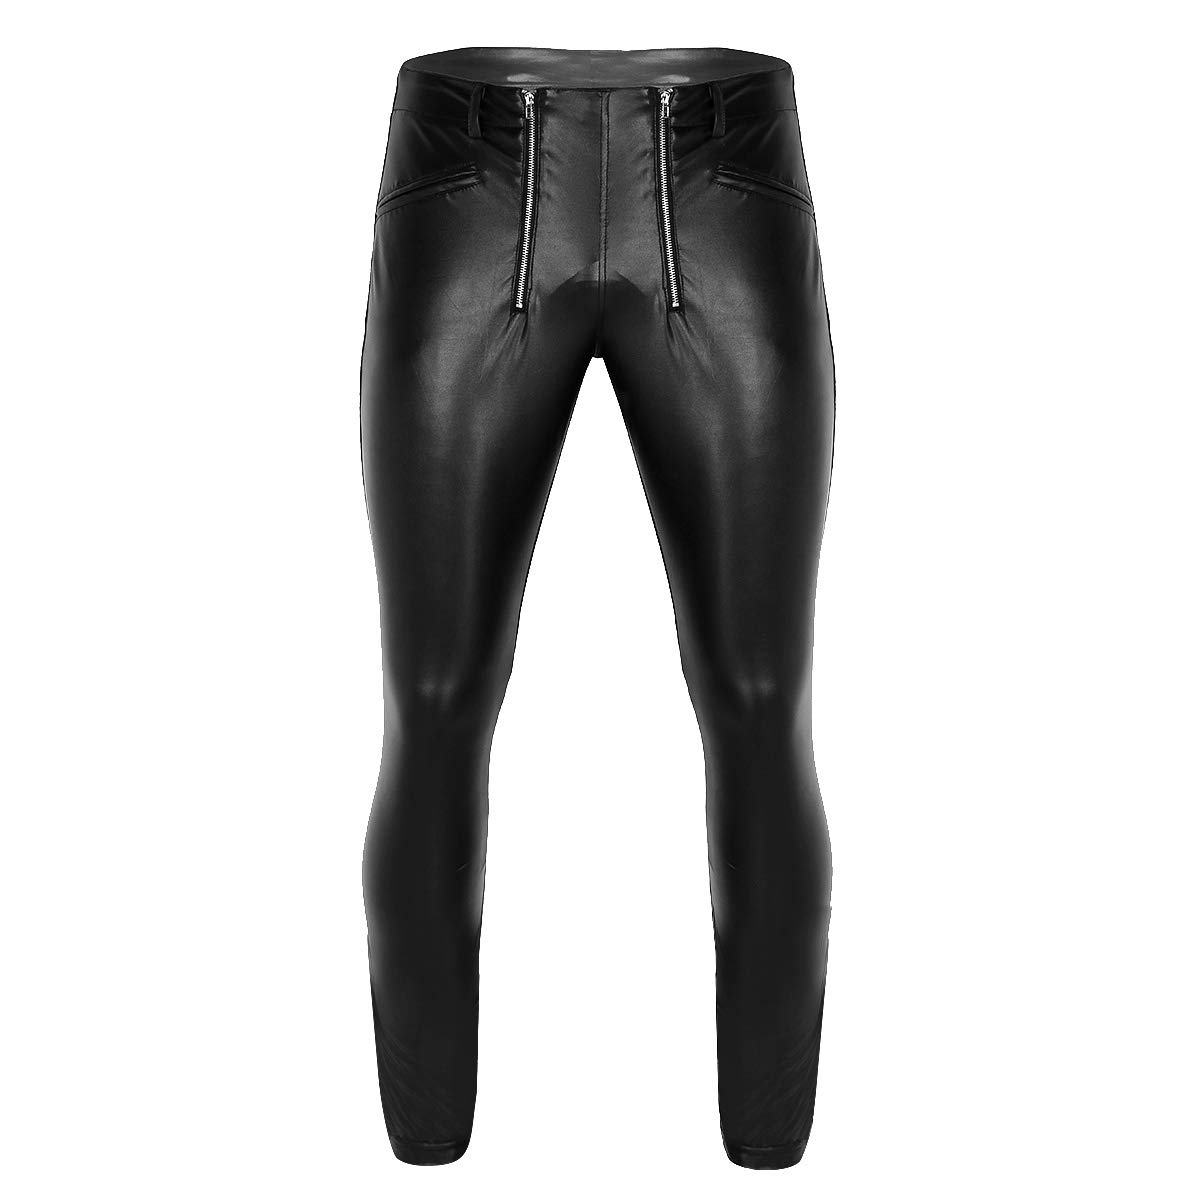 cd0d253cae0a67 Amazon.com: Agoky Men's Patent Leather Long Pants Zipper Front Slim Fit  Trousers Raves Clubwear Tight Jeans: Clothing